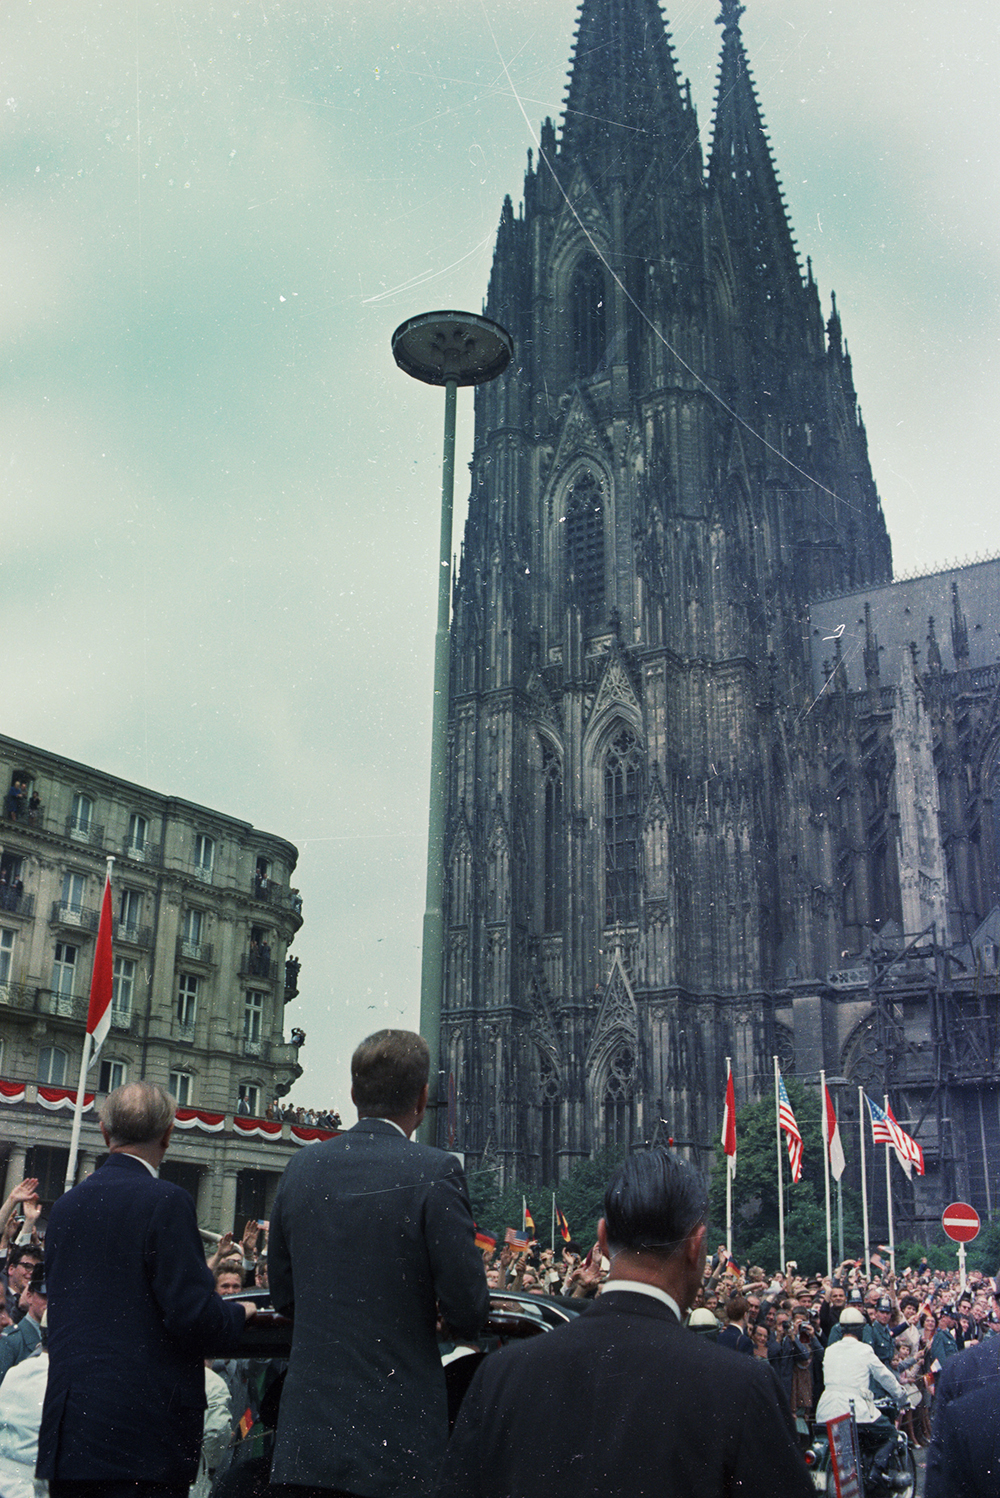 """ST-C230-33-63 23 June 1963 Trip to Europe: Germany, Cologne: Motorcade, Cathedral [Note: Scratches and blemishes throughout image are original to the negative.] Please credit """"Cecil Stoughton. White House Photographs. John F. Kennedy Presidential Library and Museum, Boston"""""""